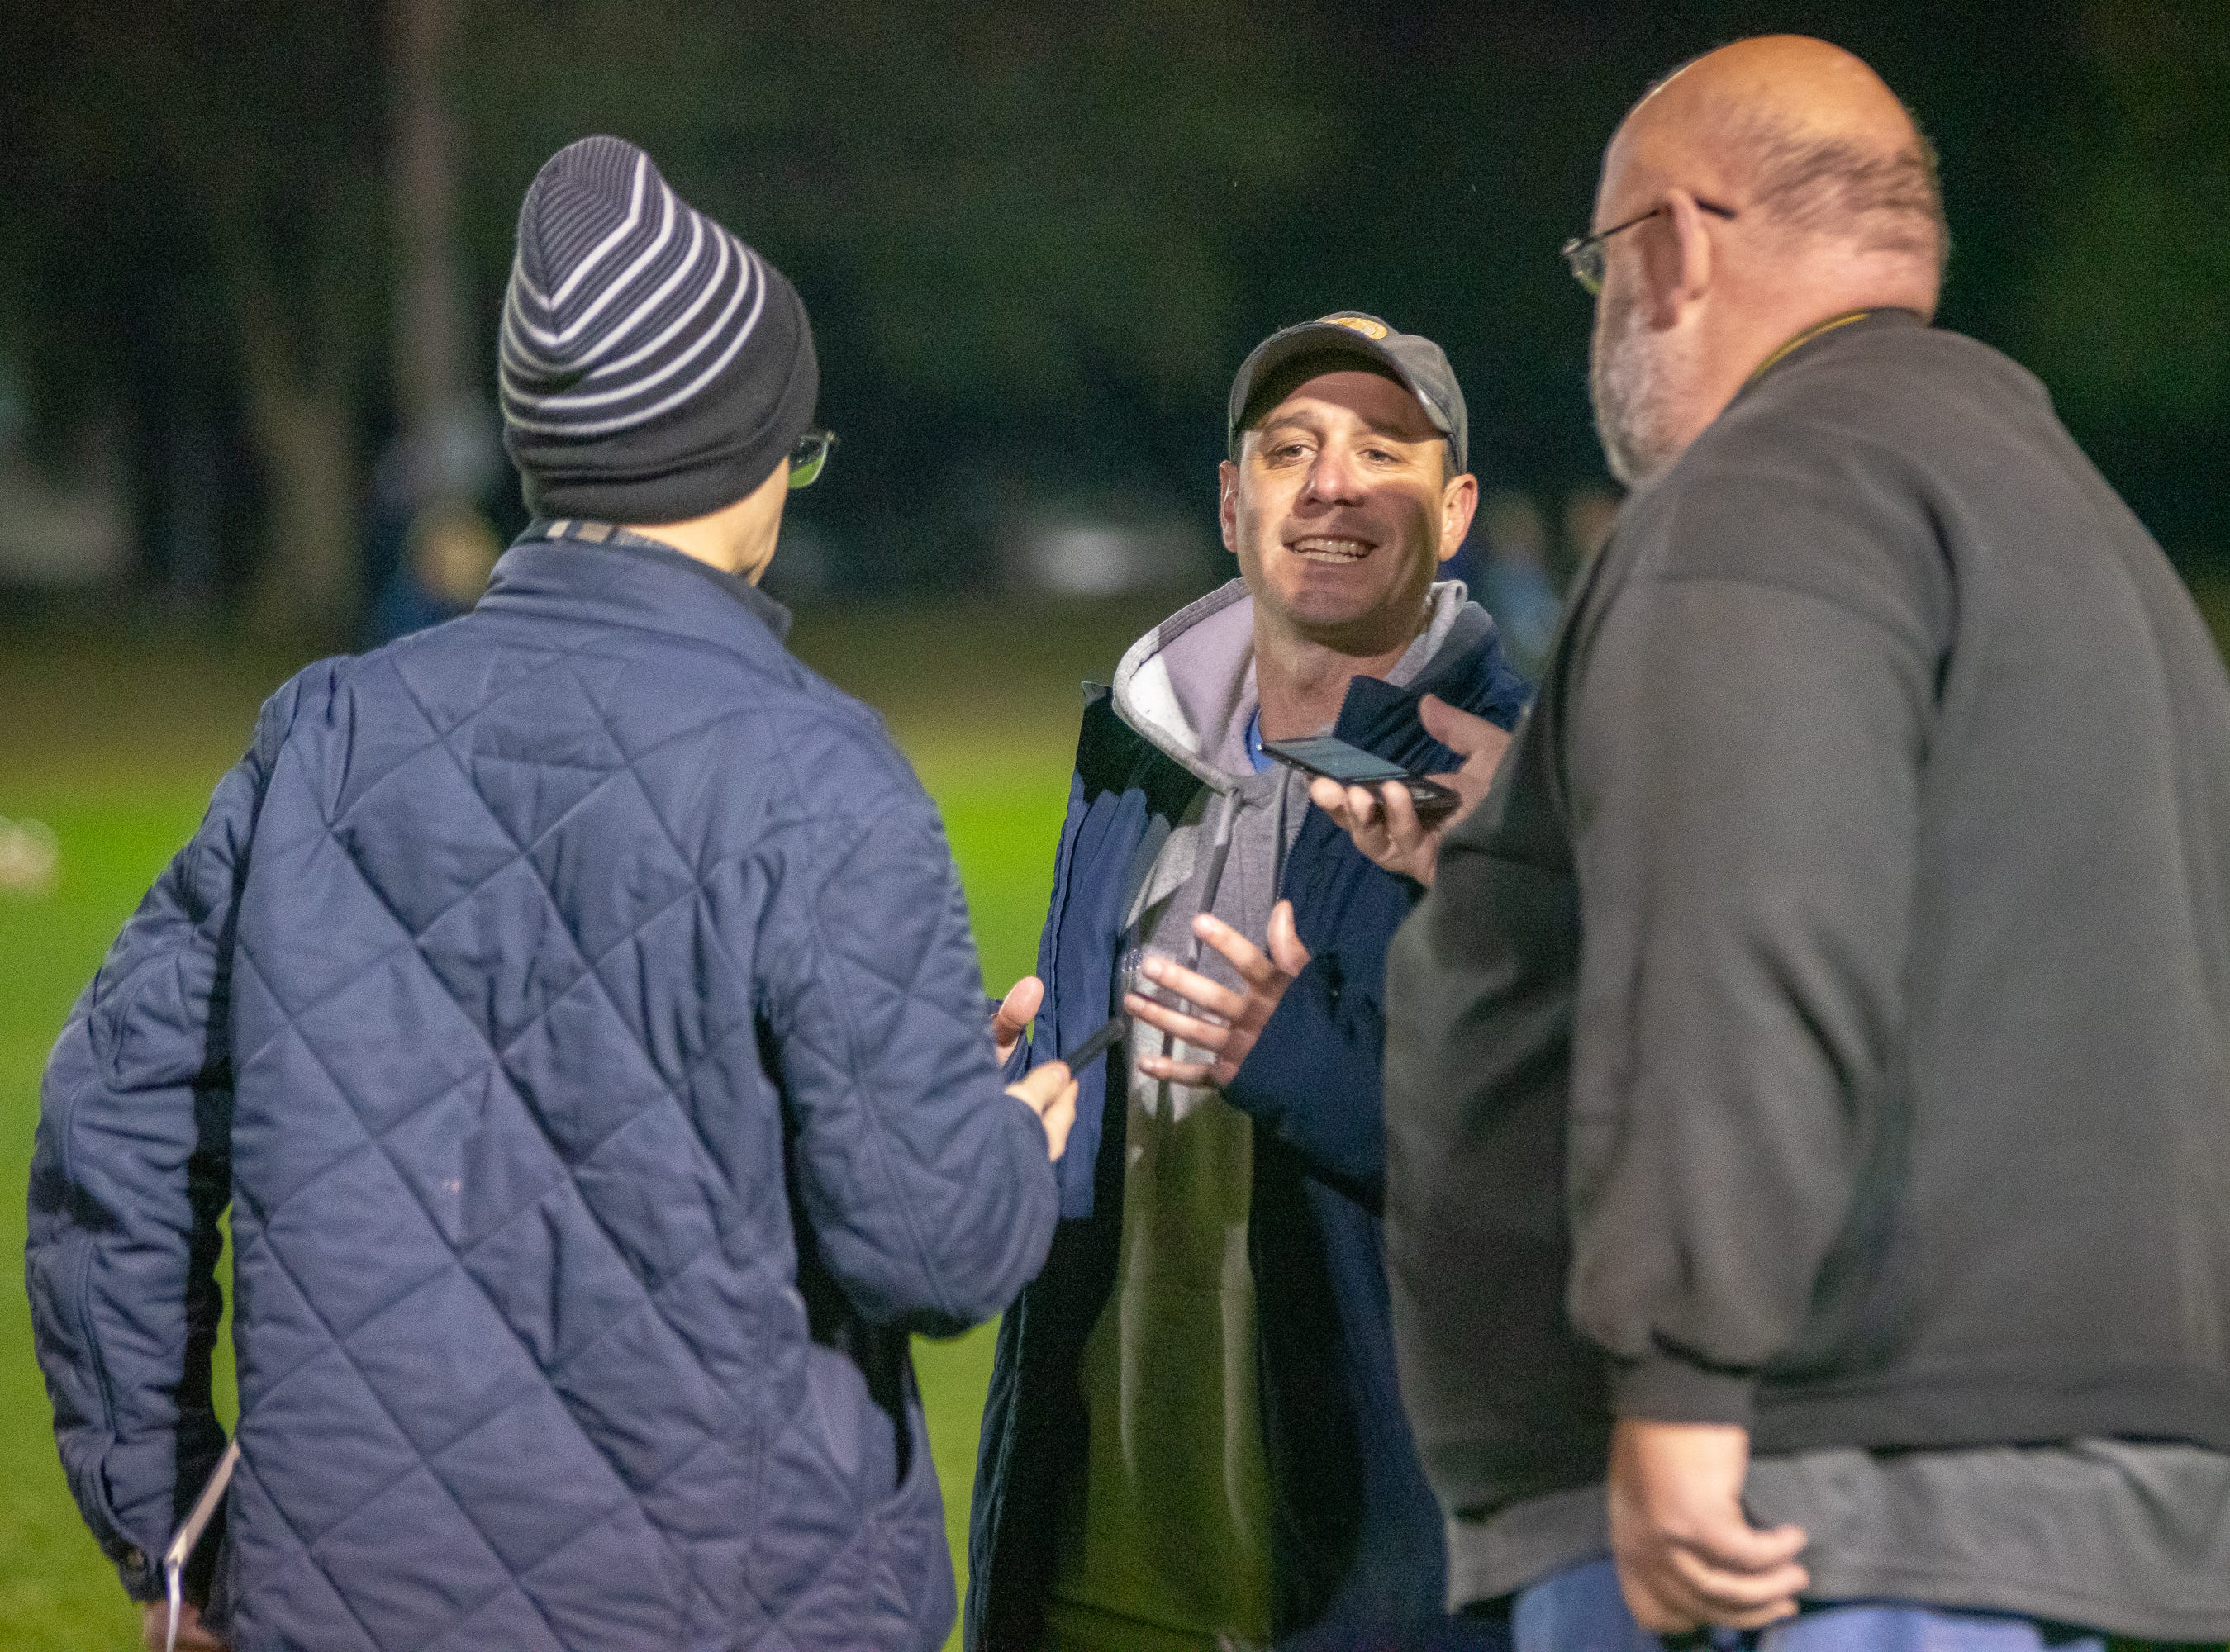 ESA's head coach J.B. Brunet talks with reporters after the game as the ESA Falcons take on the Catholic High Panthers on January 28, 2019.